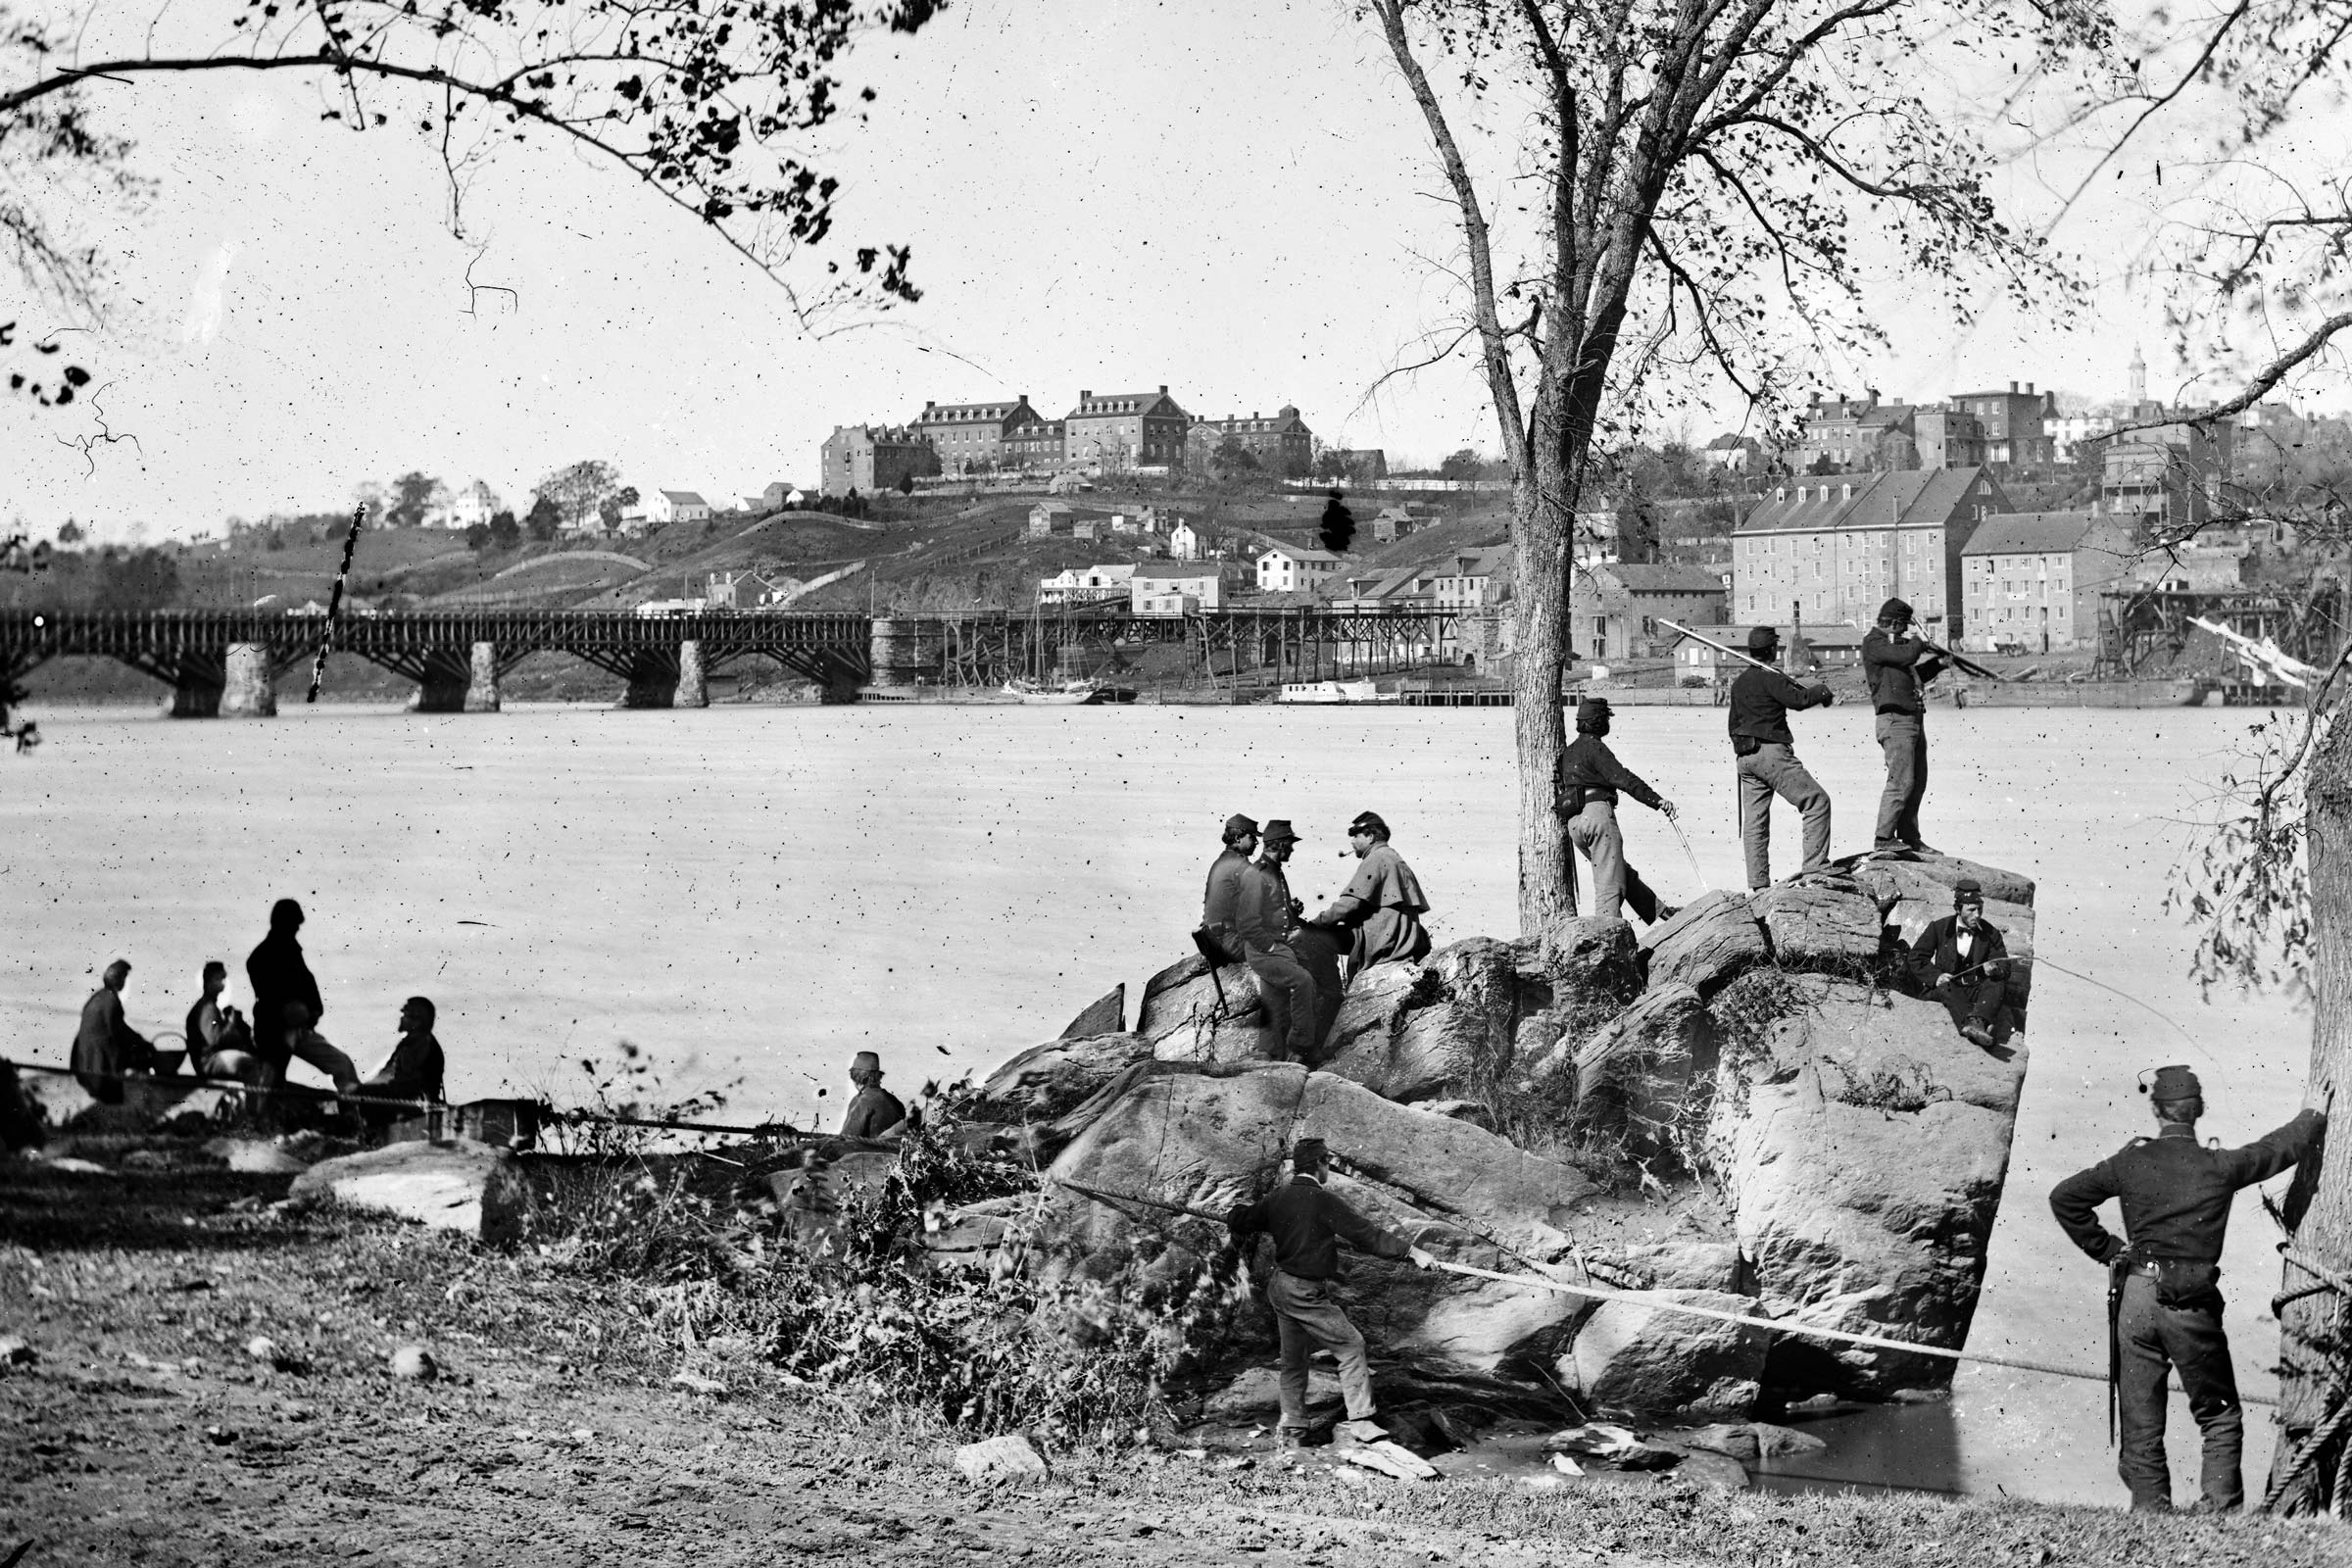 Union soldiers on Mason's Island (later Theodore Roosevelt Island) in Washington in 1861. Behind them is the Potomac Aqueduct Bridge; Georgetown University is on top of the hill. The island served as a storage and distribution site and also as a Union tra